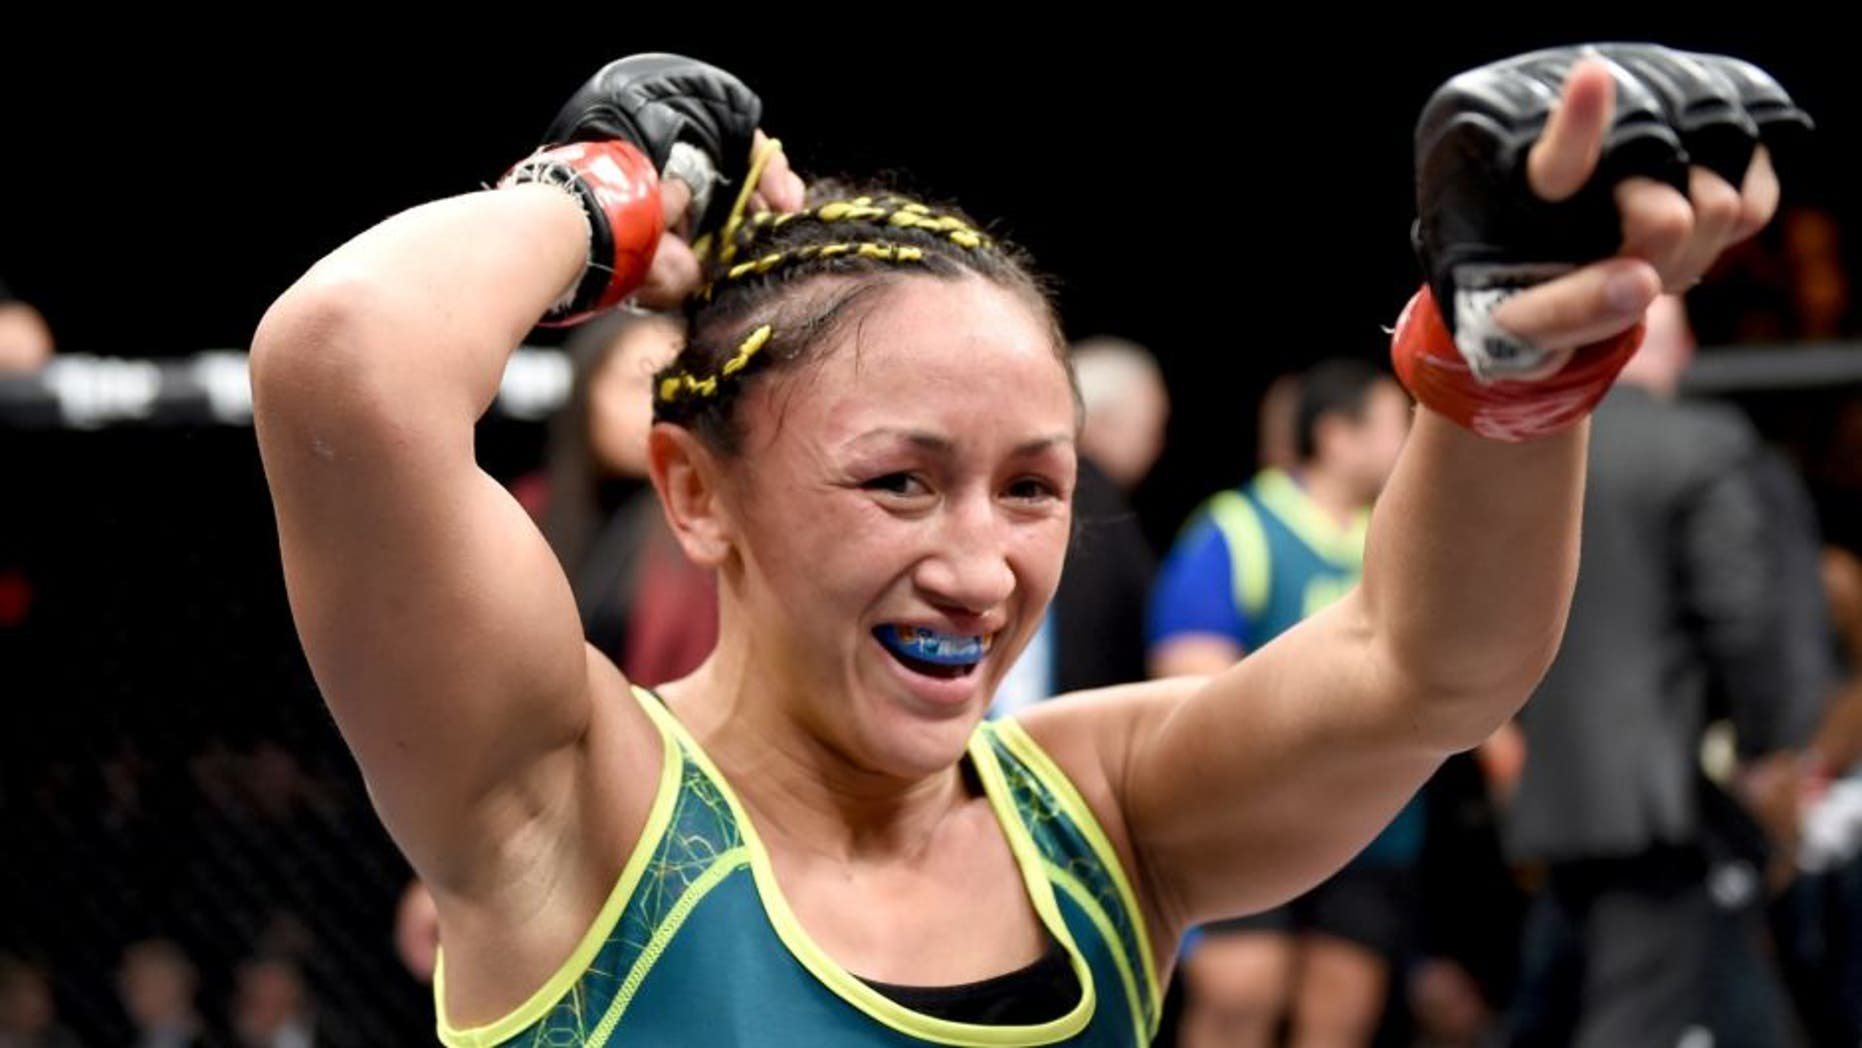 LAS VEGAS, NEVADA - DECEMBER 12: Carla Esparza celebrates her submission victory over Rose Namajunas in their strawweight championship fight during The Ultimate Fighter Finale event inside the Pearl concert theater at the Palms Casino Resort on December 12, 2014 in Las Vegas, Nevada. (Photo by Jeff Bottari/Zuffa LLC/Zuffa LLC via Getty Images)